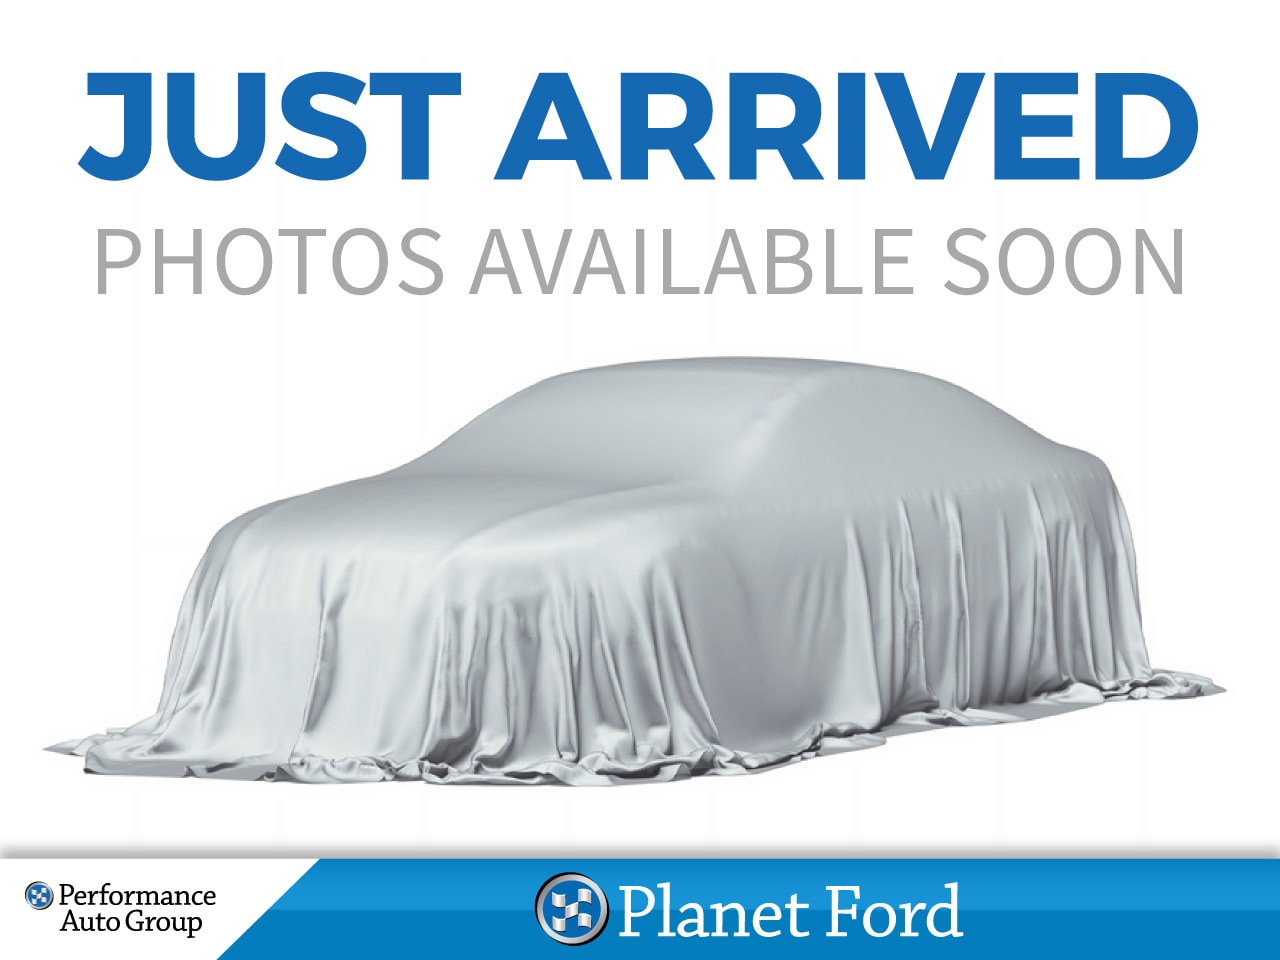 2014 Ford Mustang GT. CAMERA. LEATHER. HTD SEATS. SAT RADIO. V-8 Coupe